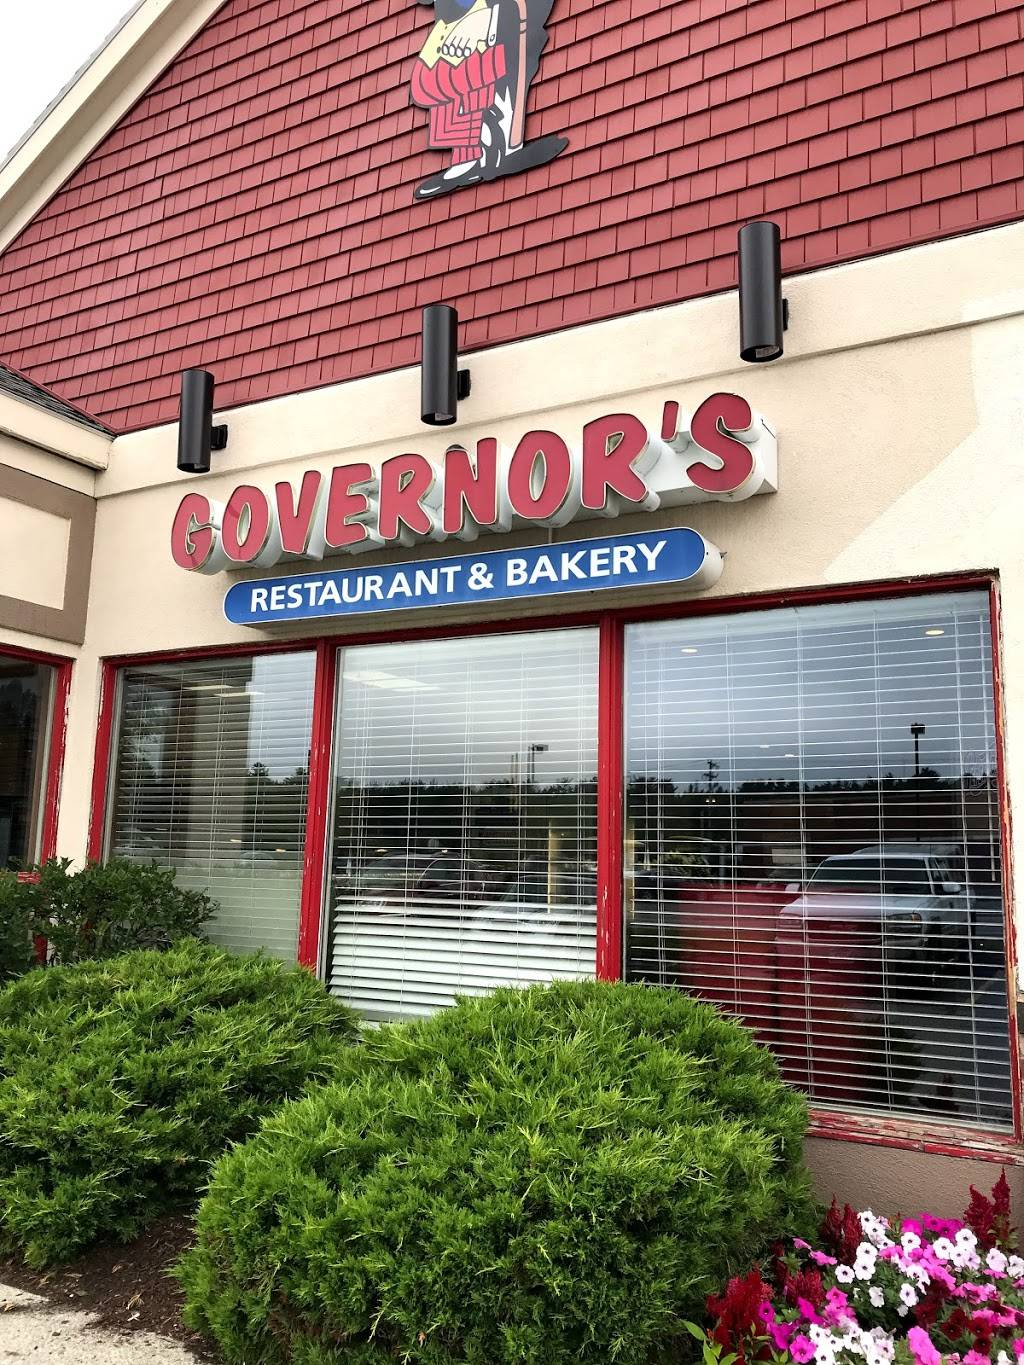 Governors Restaurant & Bakery | bakery | 1715, 253 High St, Ellsworth, ME 04605, USA | 2076101880 OR +1 207-610-1880